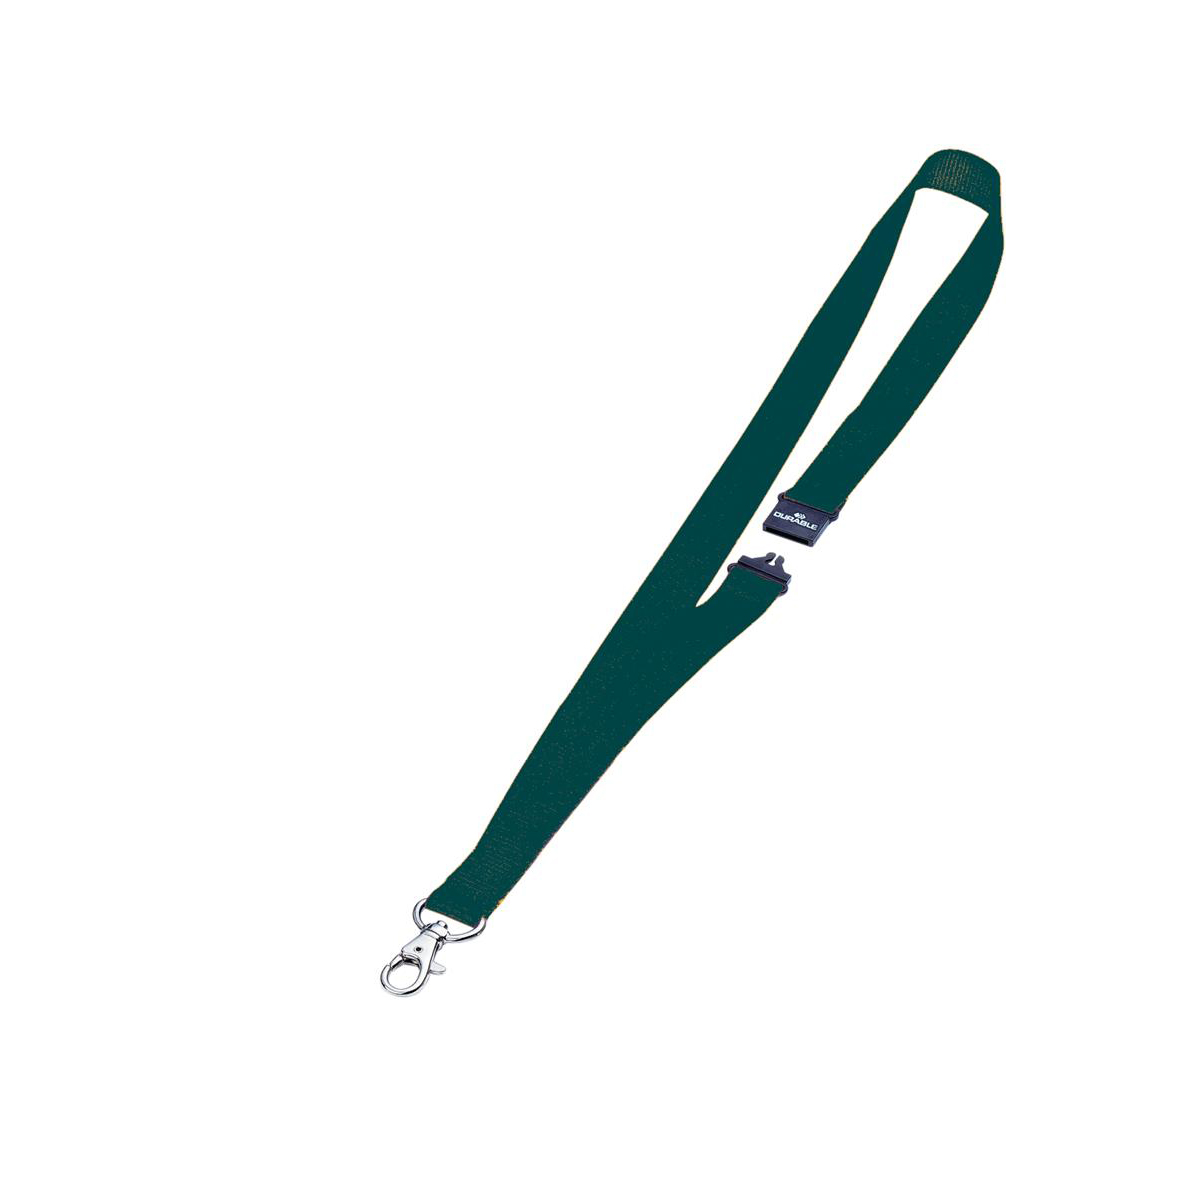 Durable Textile Name Badge Lanyards 20x440mm with Safety Closure Green Ref 813705 Pack 10